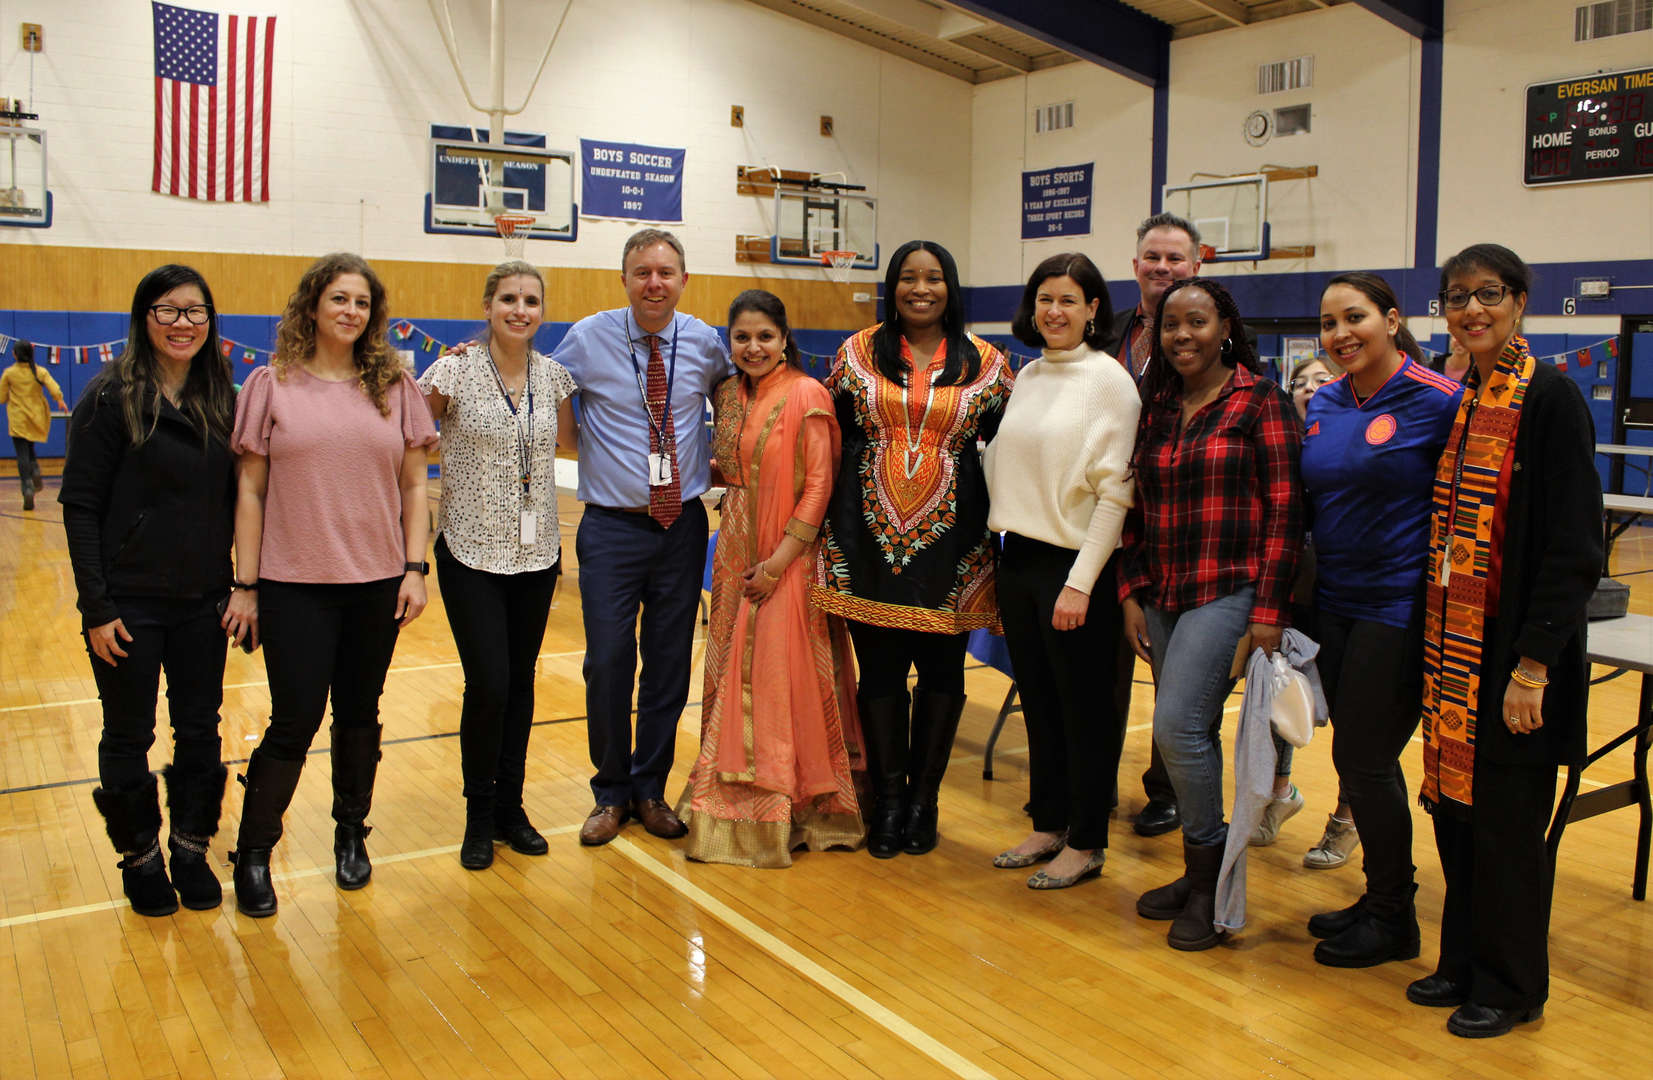 The school's Diversity Committee members pose for a group photo.